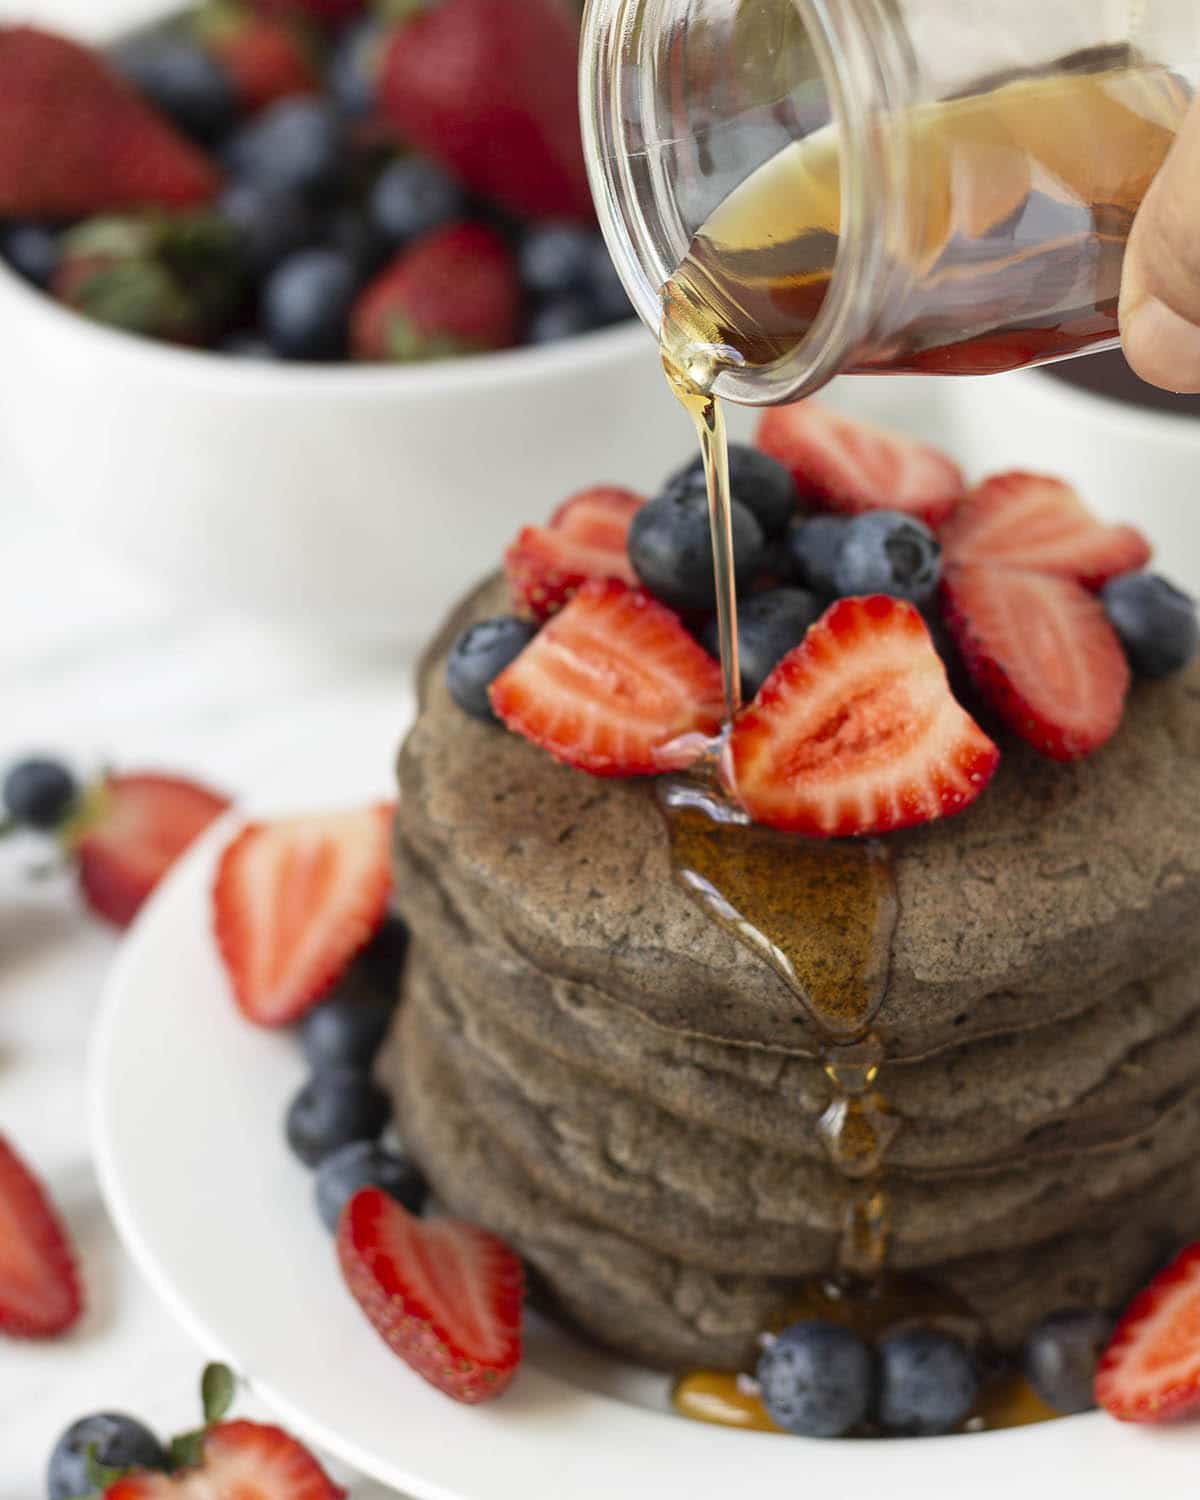 Maple syrup being poured from a small glass jar onto a stack of pancakes that are garnished with fresh berries.